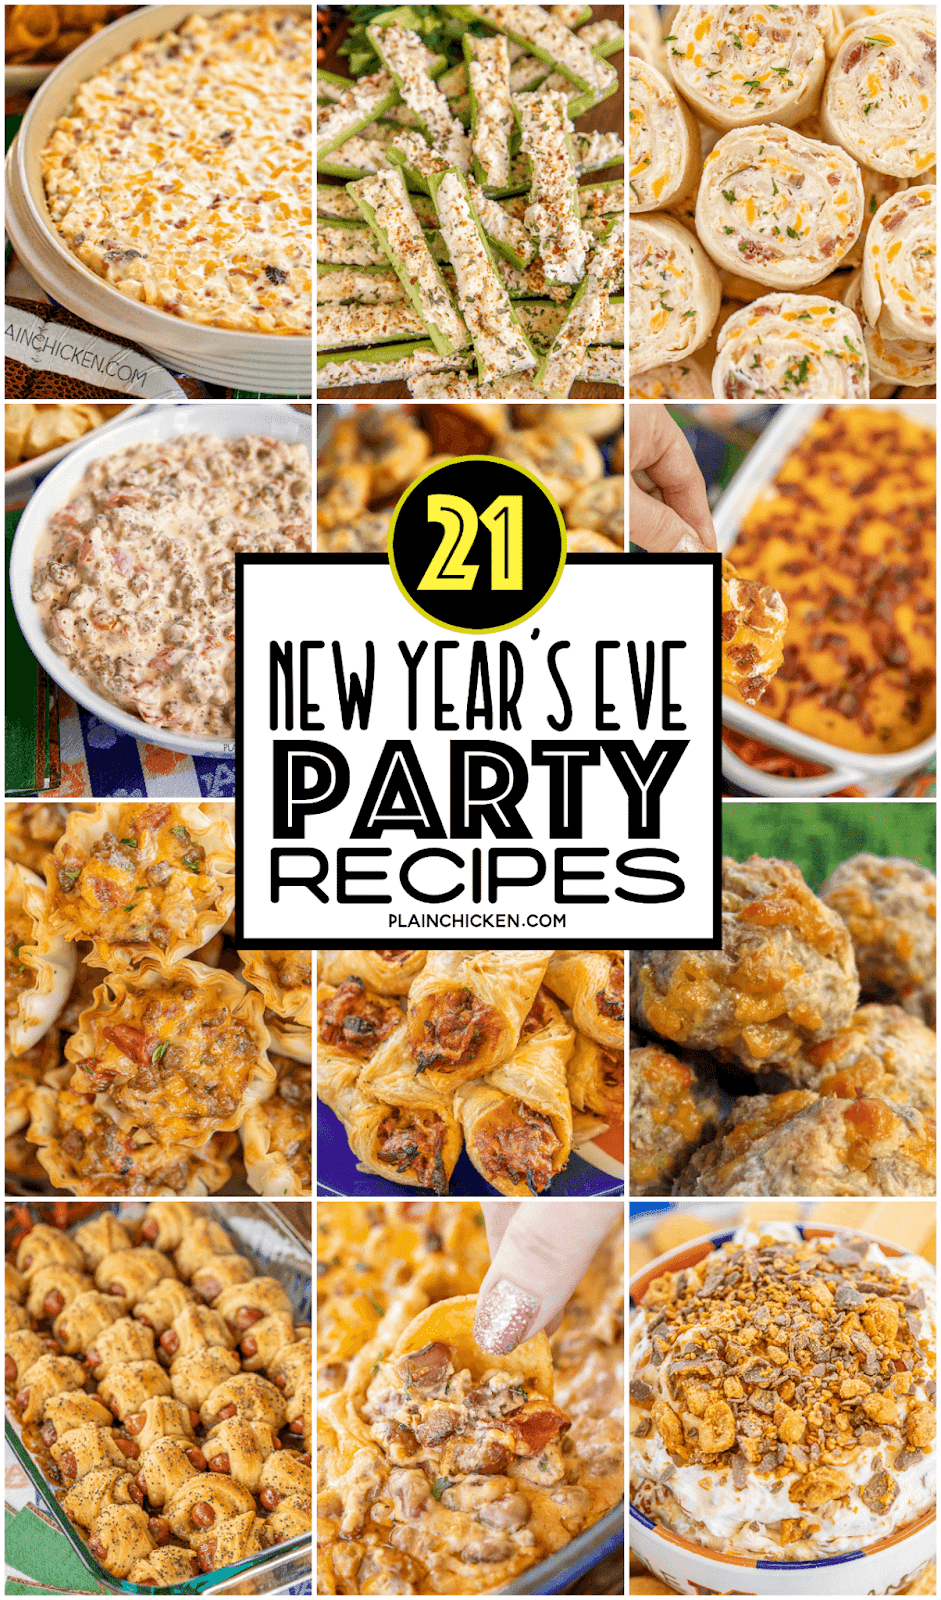 New Year's Eve Party Recipes - Plain Chicken